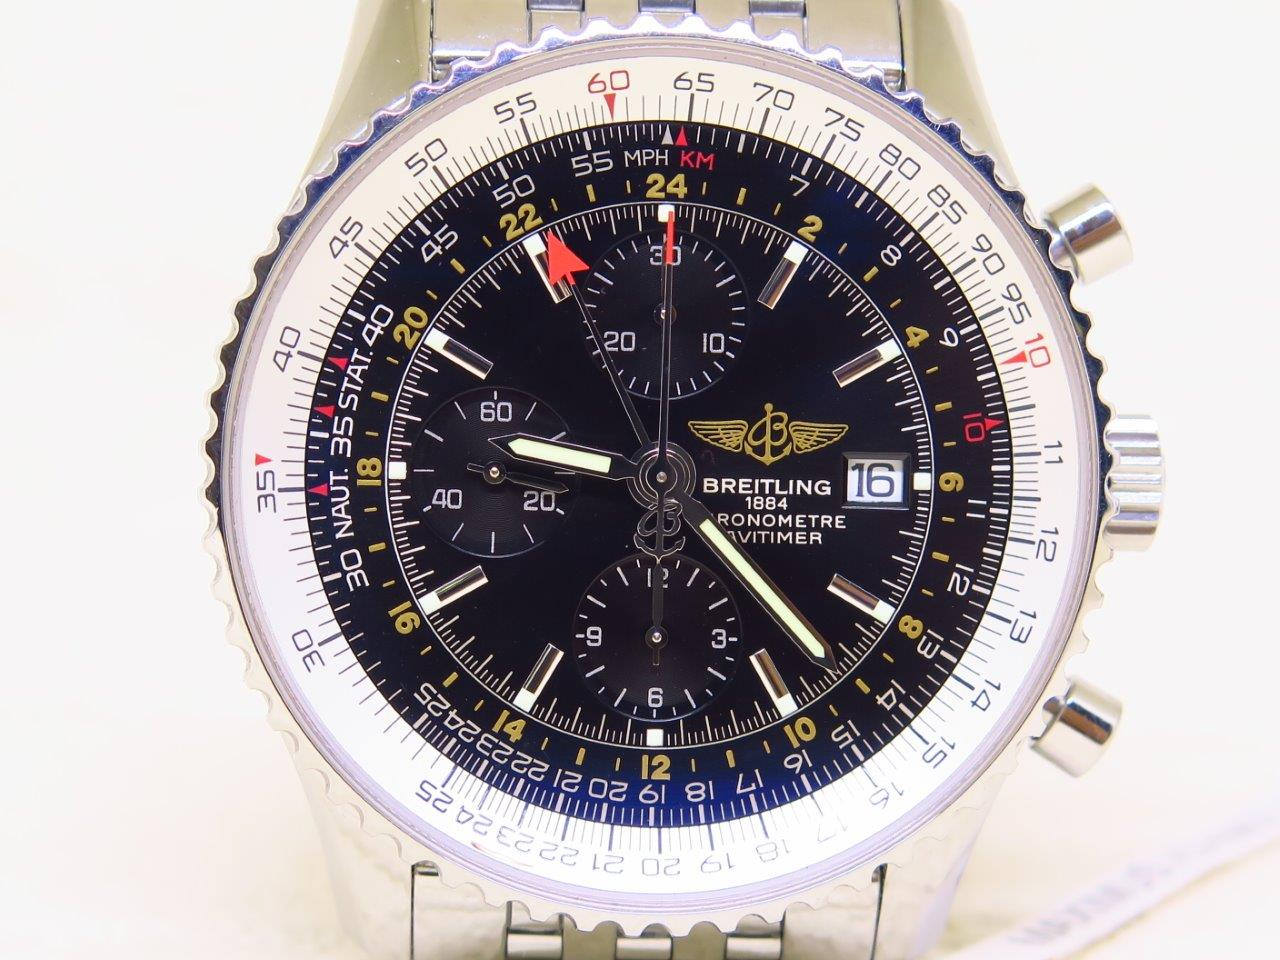 BREITLING NAVITIMER CHRONOMETRE CHRONOGRAPH GMT - AUTOMATIC - XL SIZE 46mm